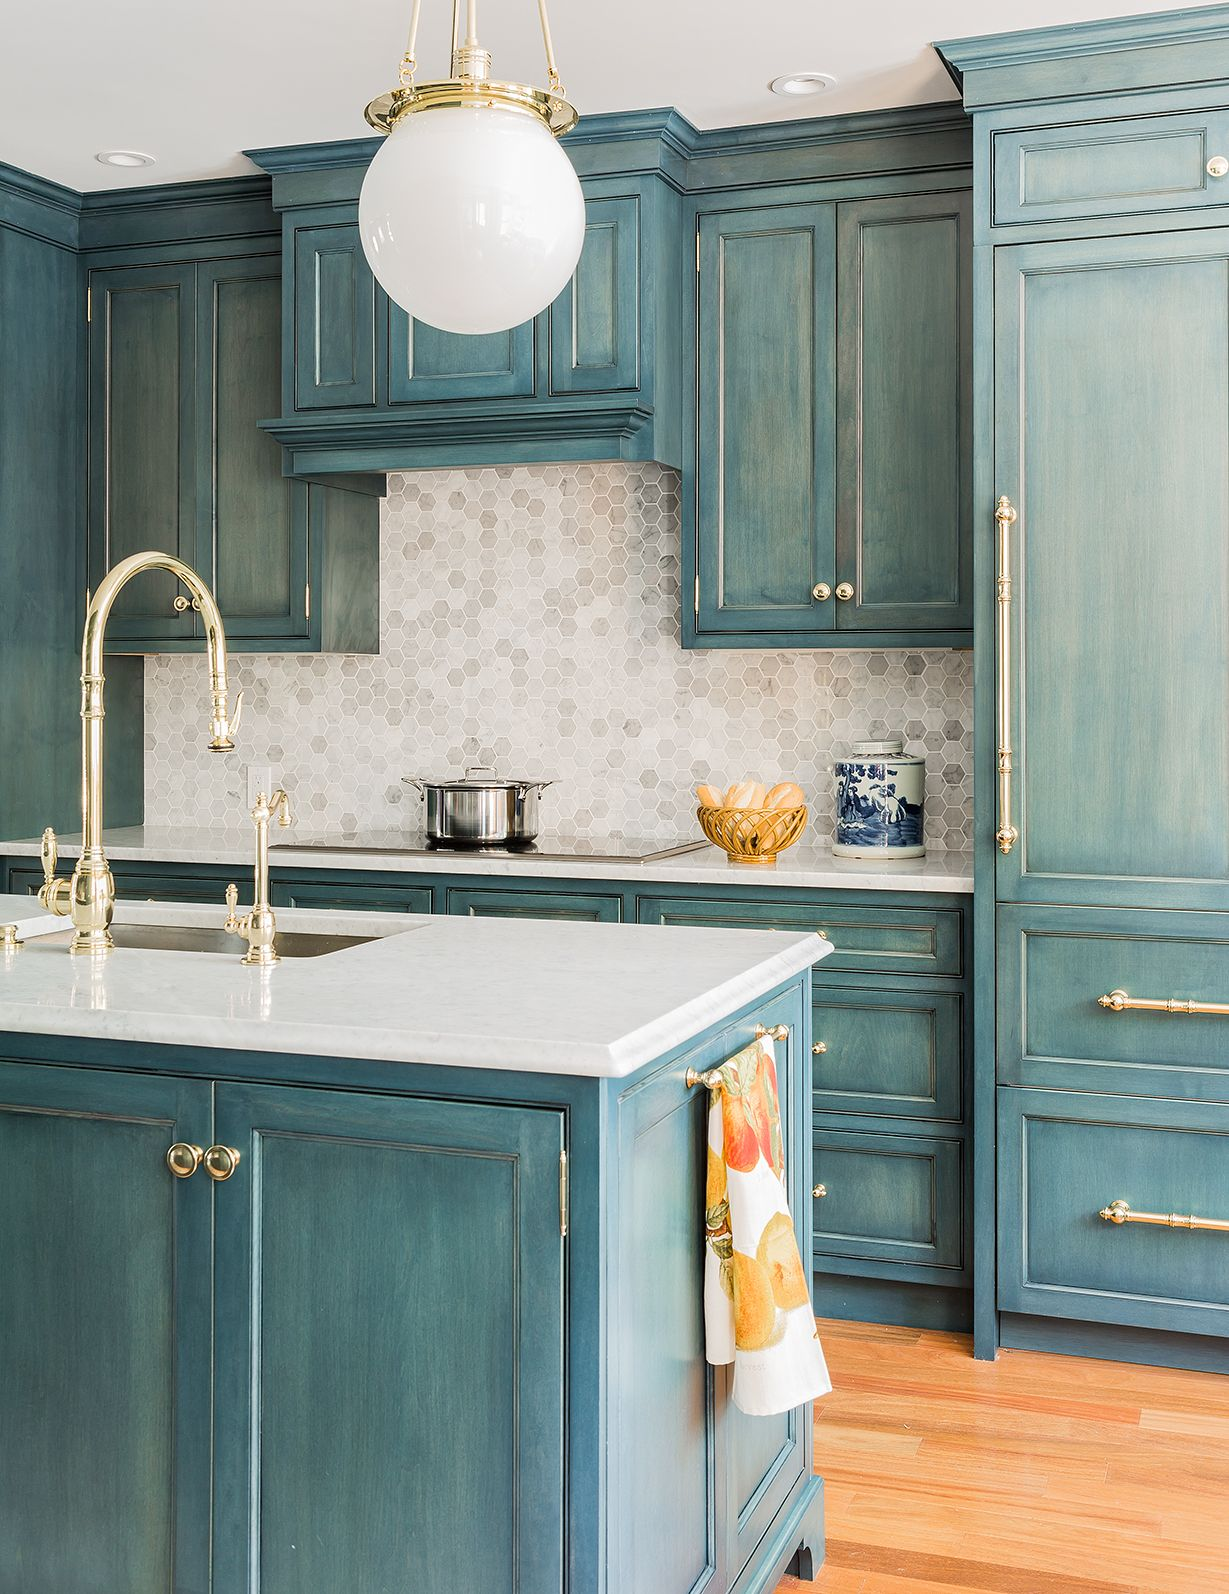 Awesome Blue Glazed Cabinets For Kitchen With Brown Floor 2835 Drabinskygallery Com Blue Kitchen Cabinets Turquoise Kitchen Rustic Kitchen